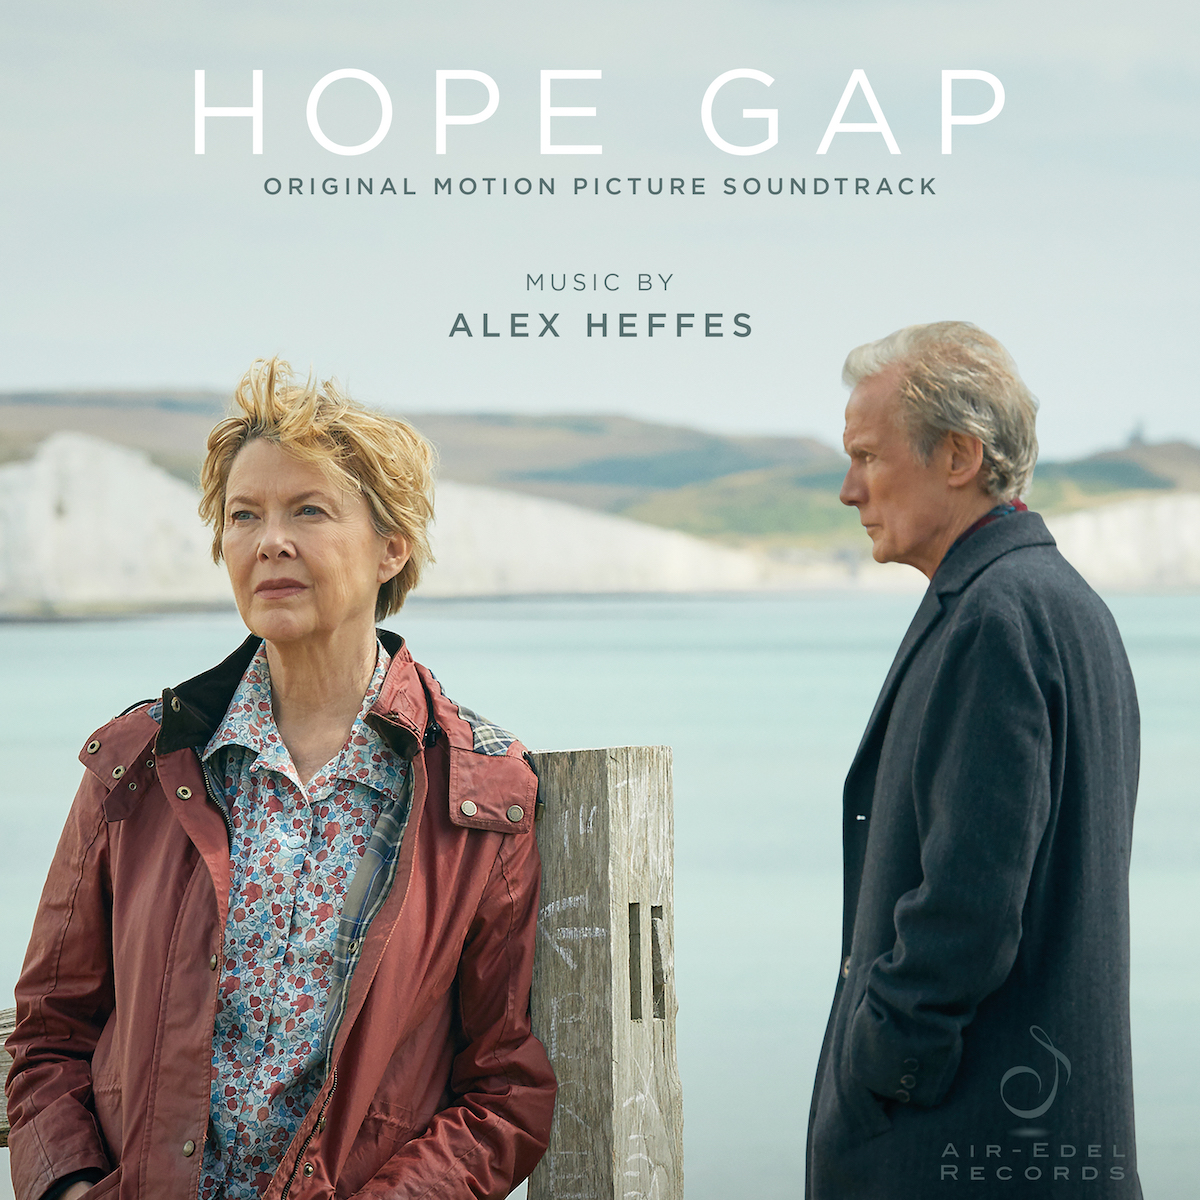 Hope Gap Air-Edel Records Alex Heffes